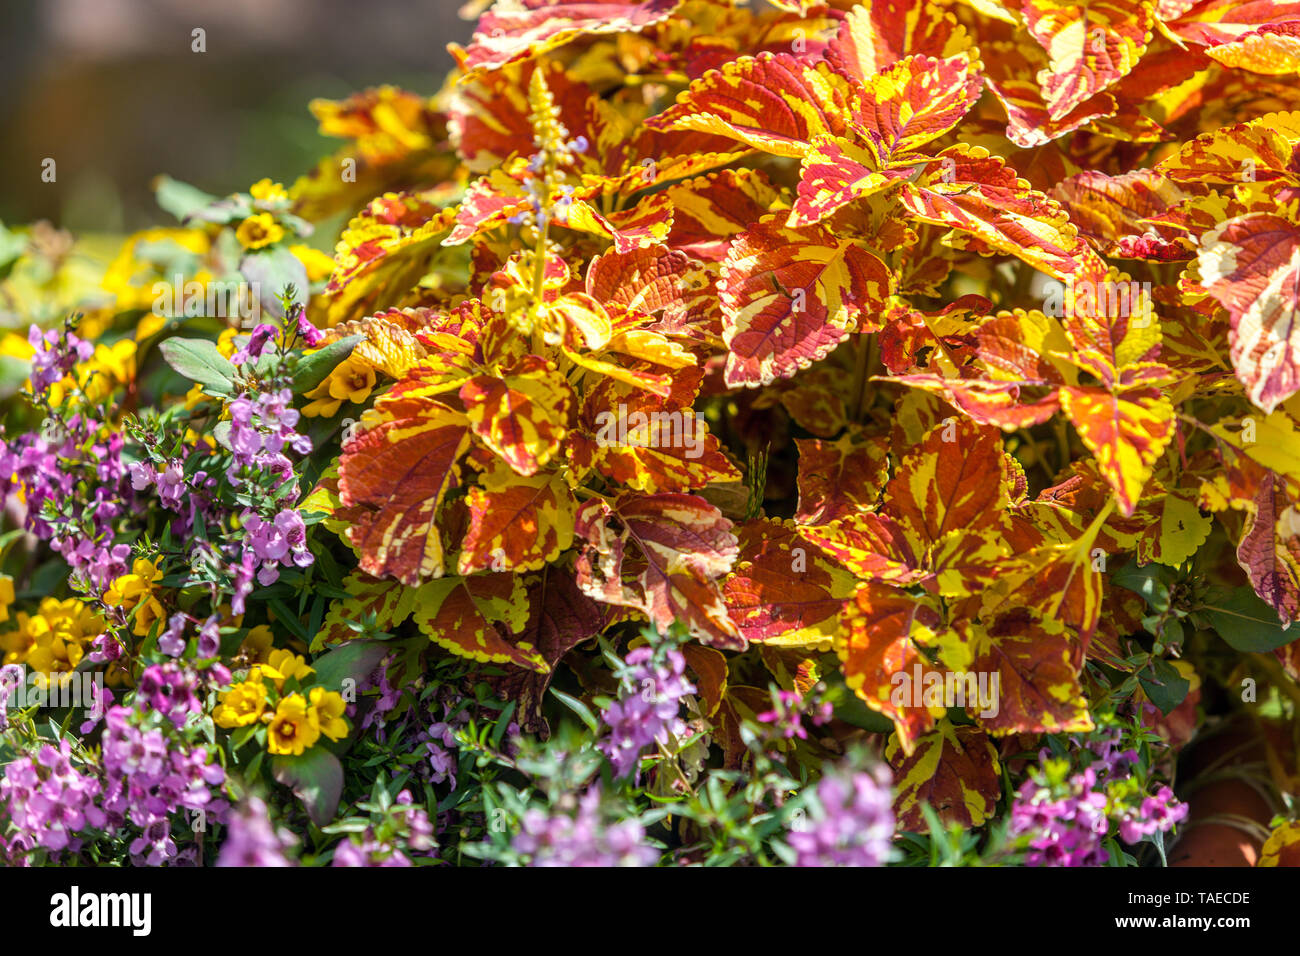 Coleus Plants With Decorative Leaves And Foliage Suitable For